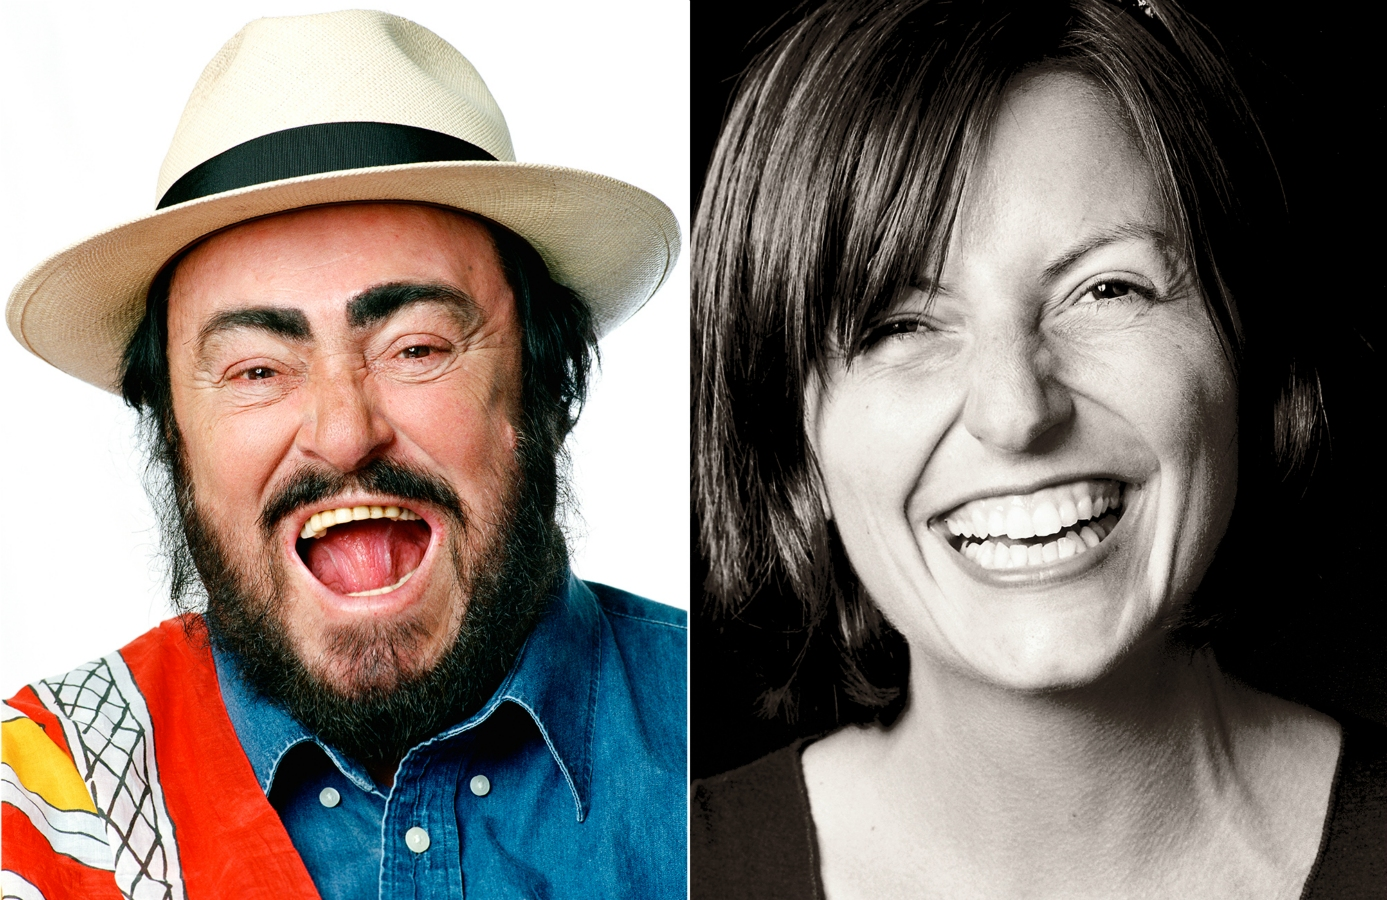 Luciano Pavarotti and Davina